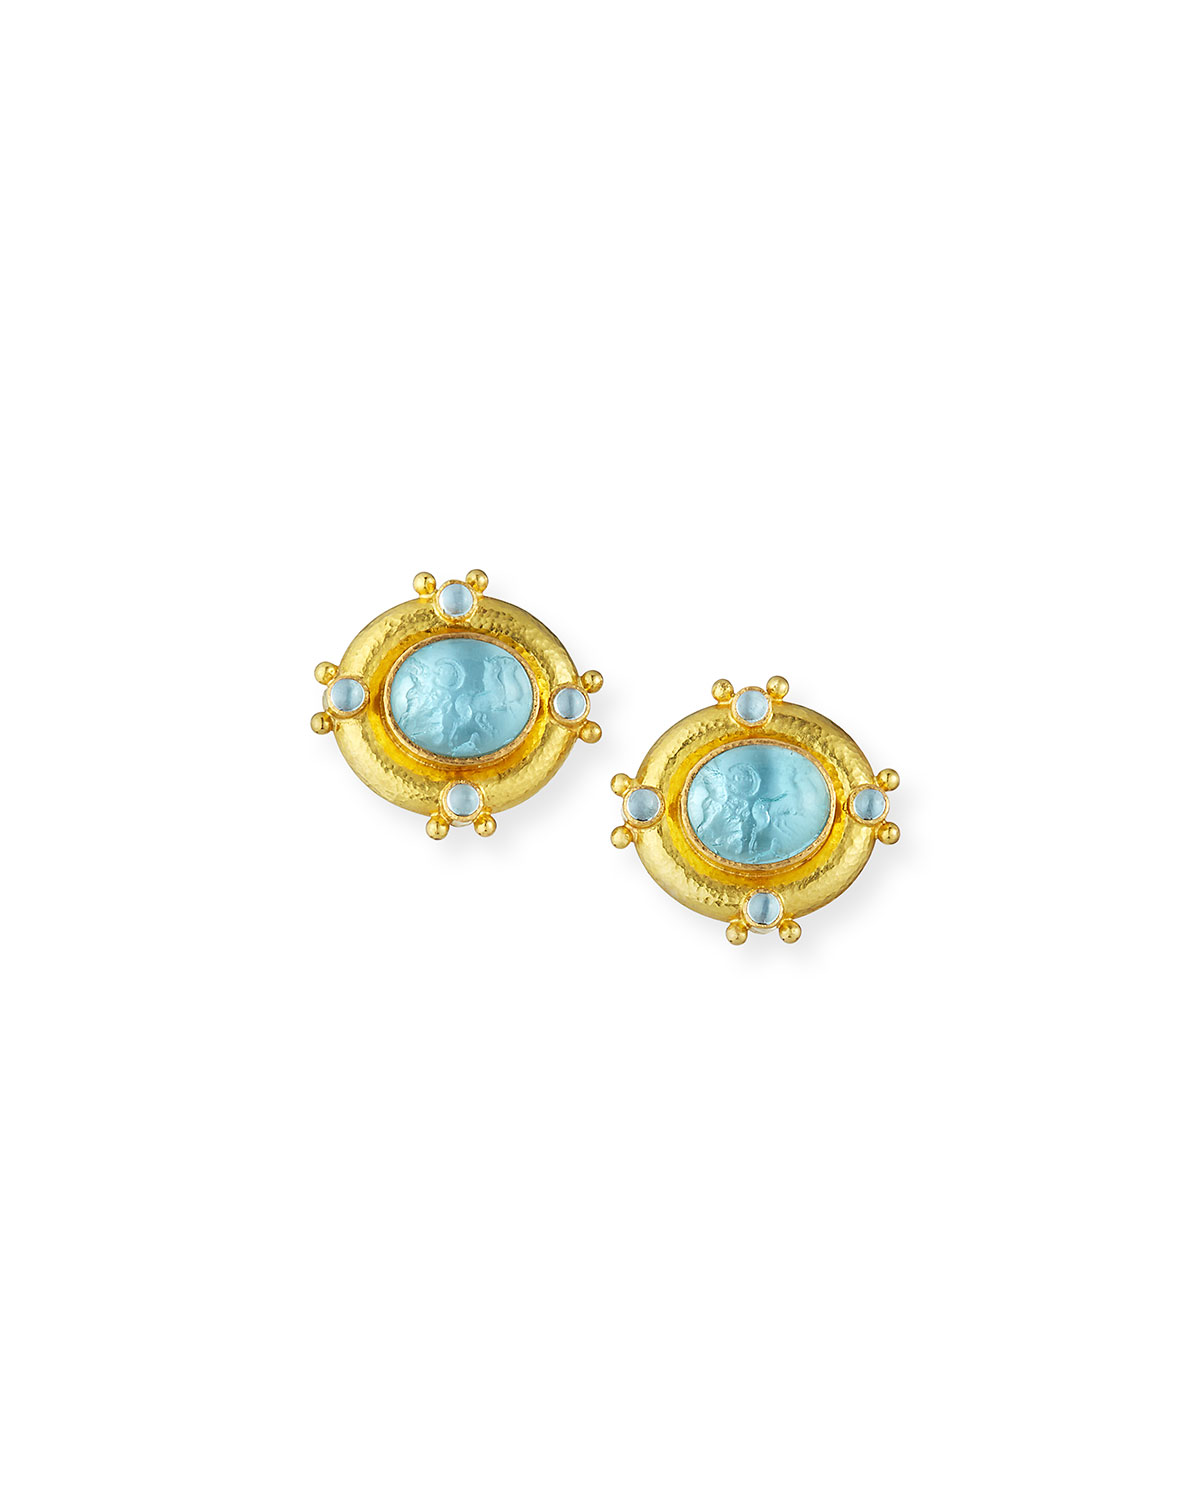 ELIZABETH LOCKE QUADRIGA INTAGLIO CLIP/POST EARRINGS, LIGHT AQUA